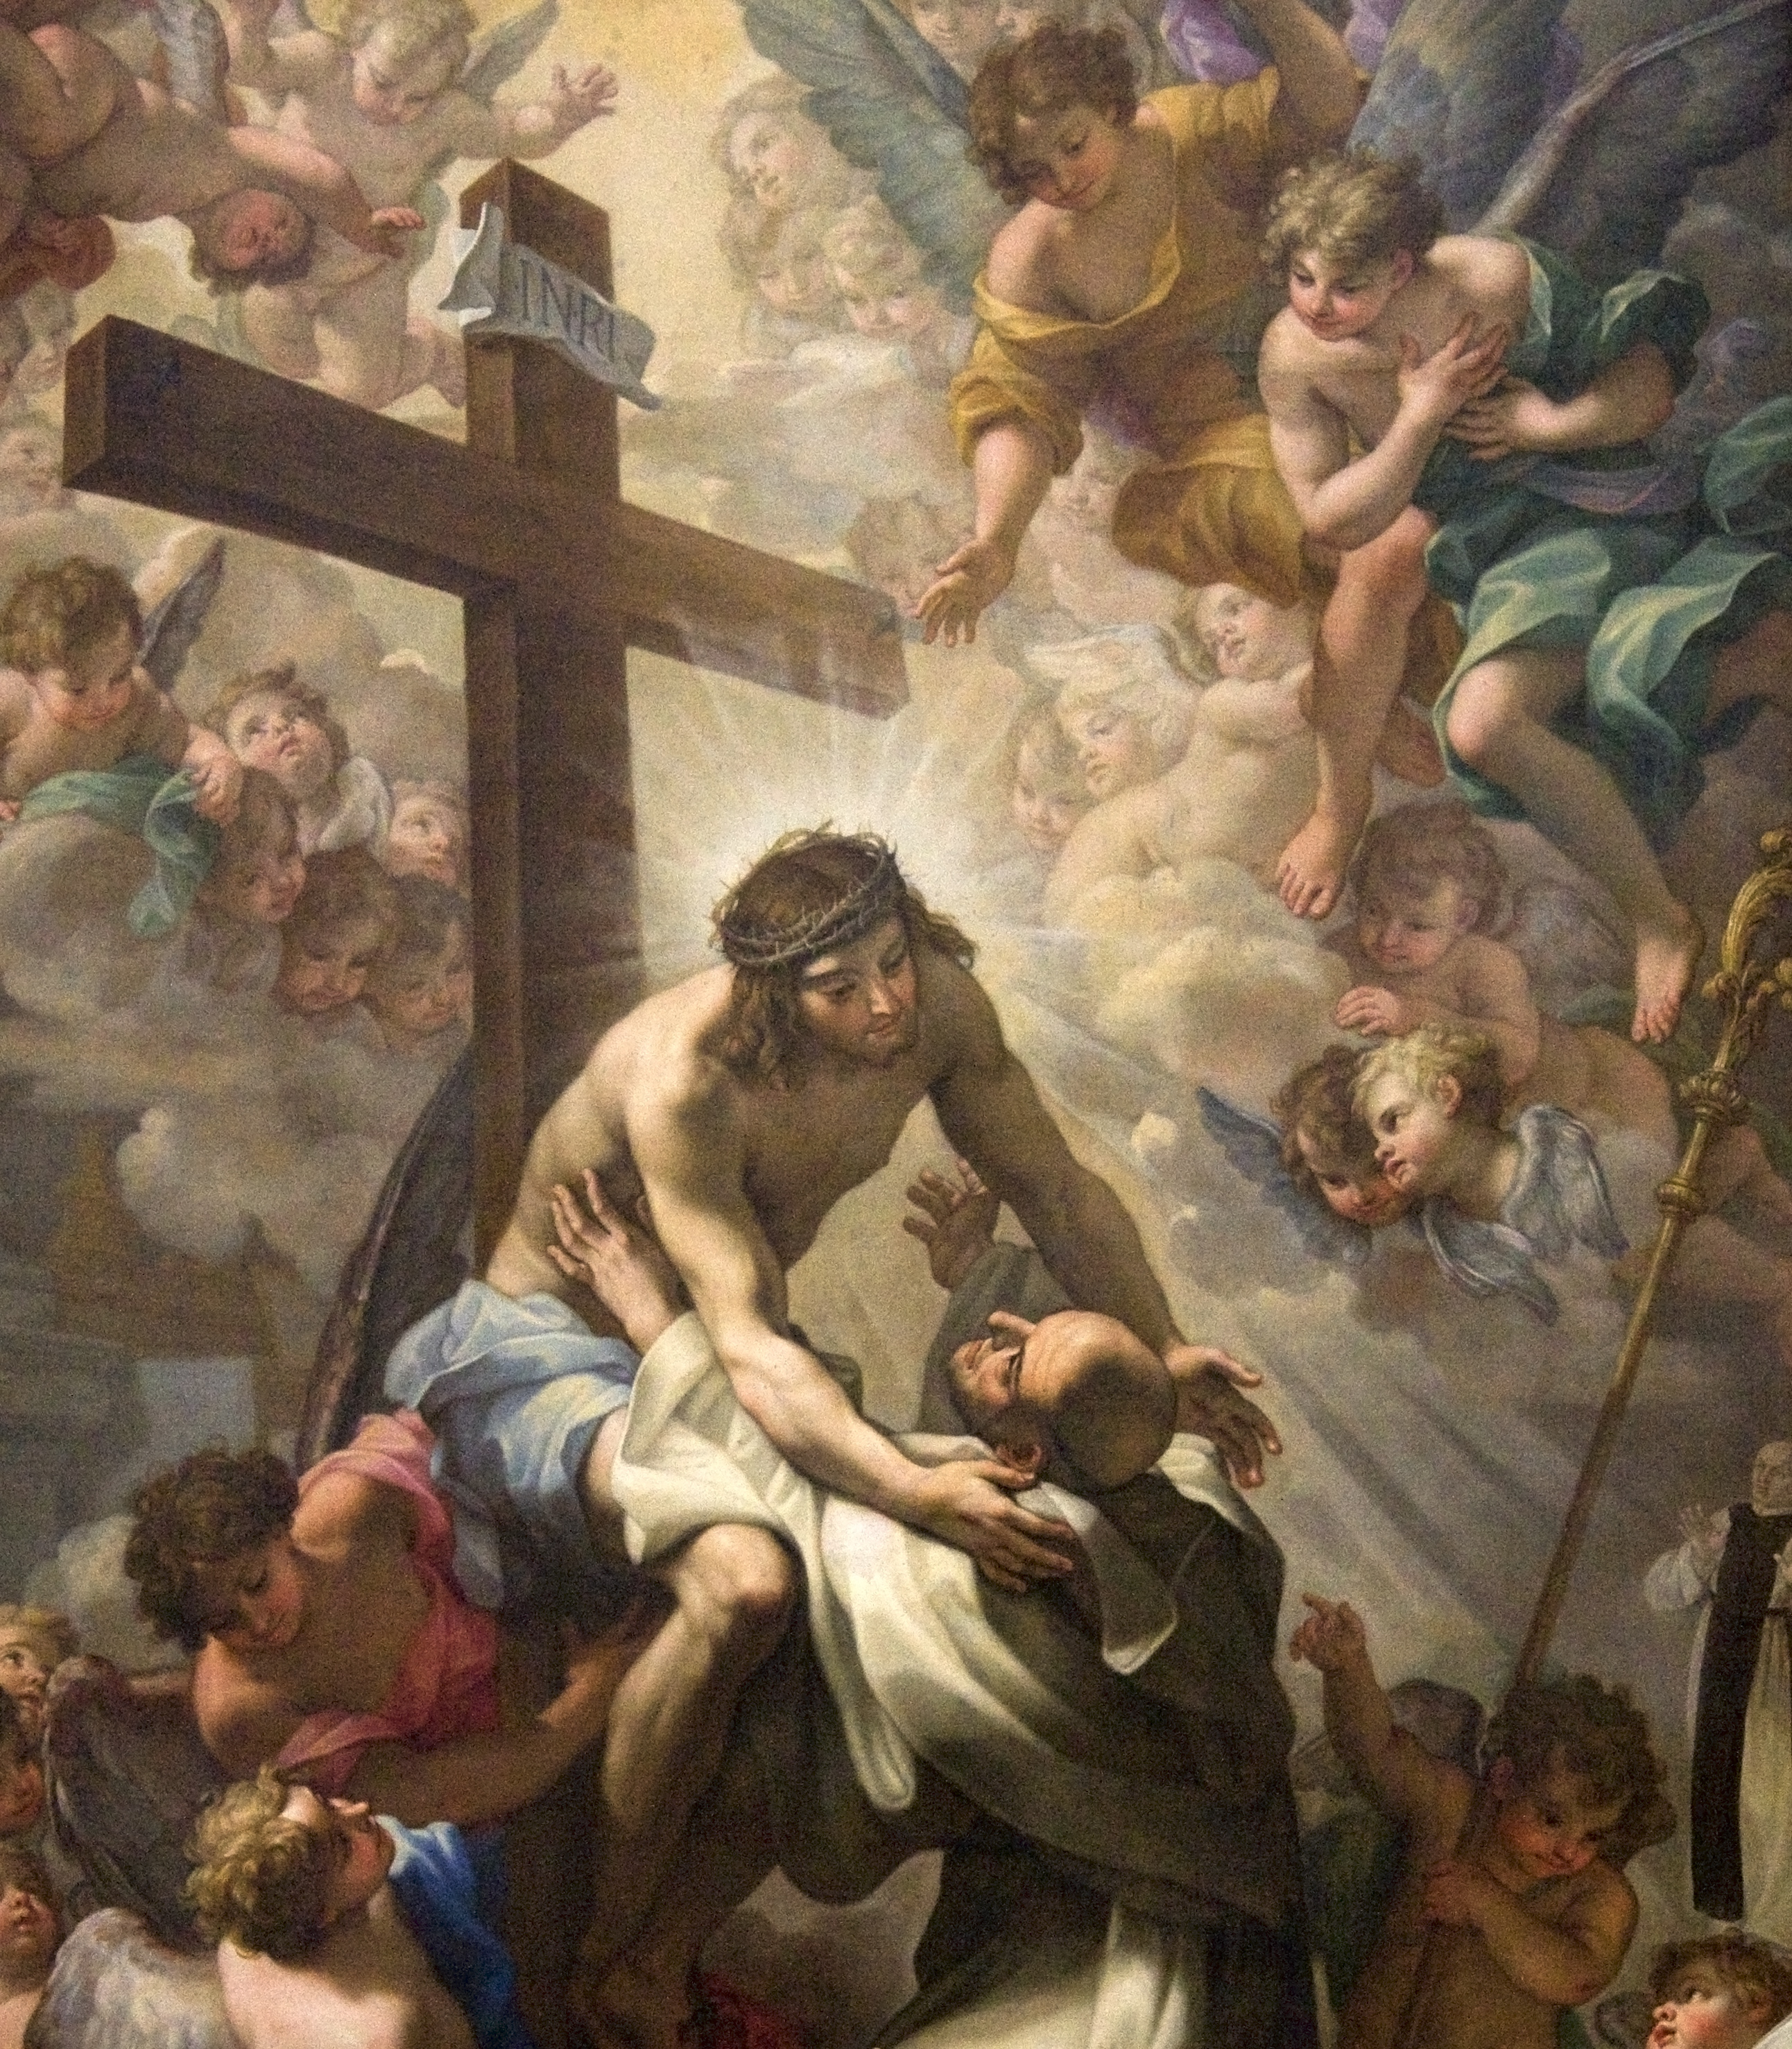 St Bernard of Clairvaux embracing the Crucified